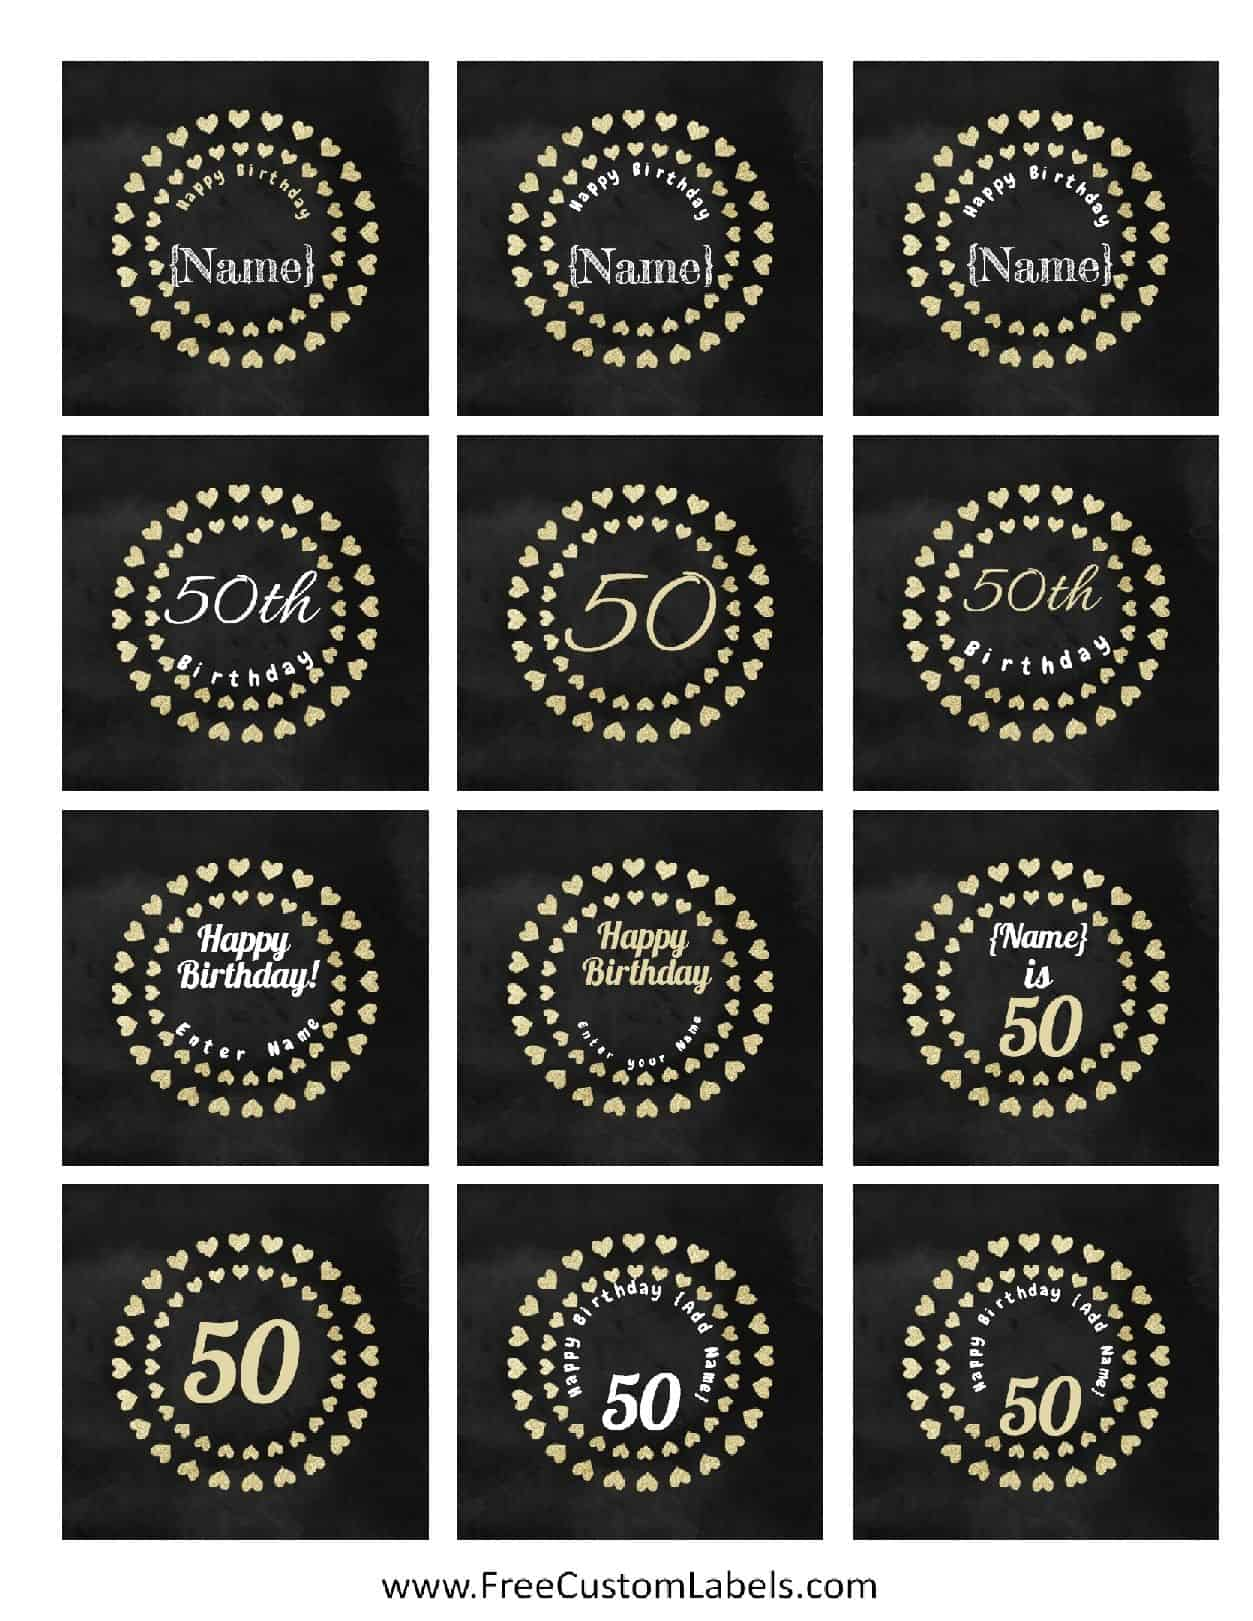 50th Birthday Cake Label Maker Chalkboard Cupcake Toppers